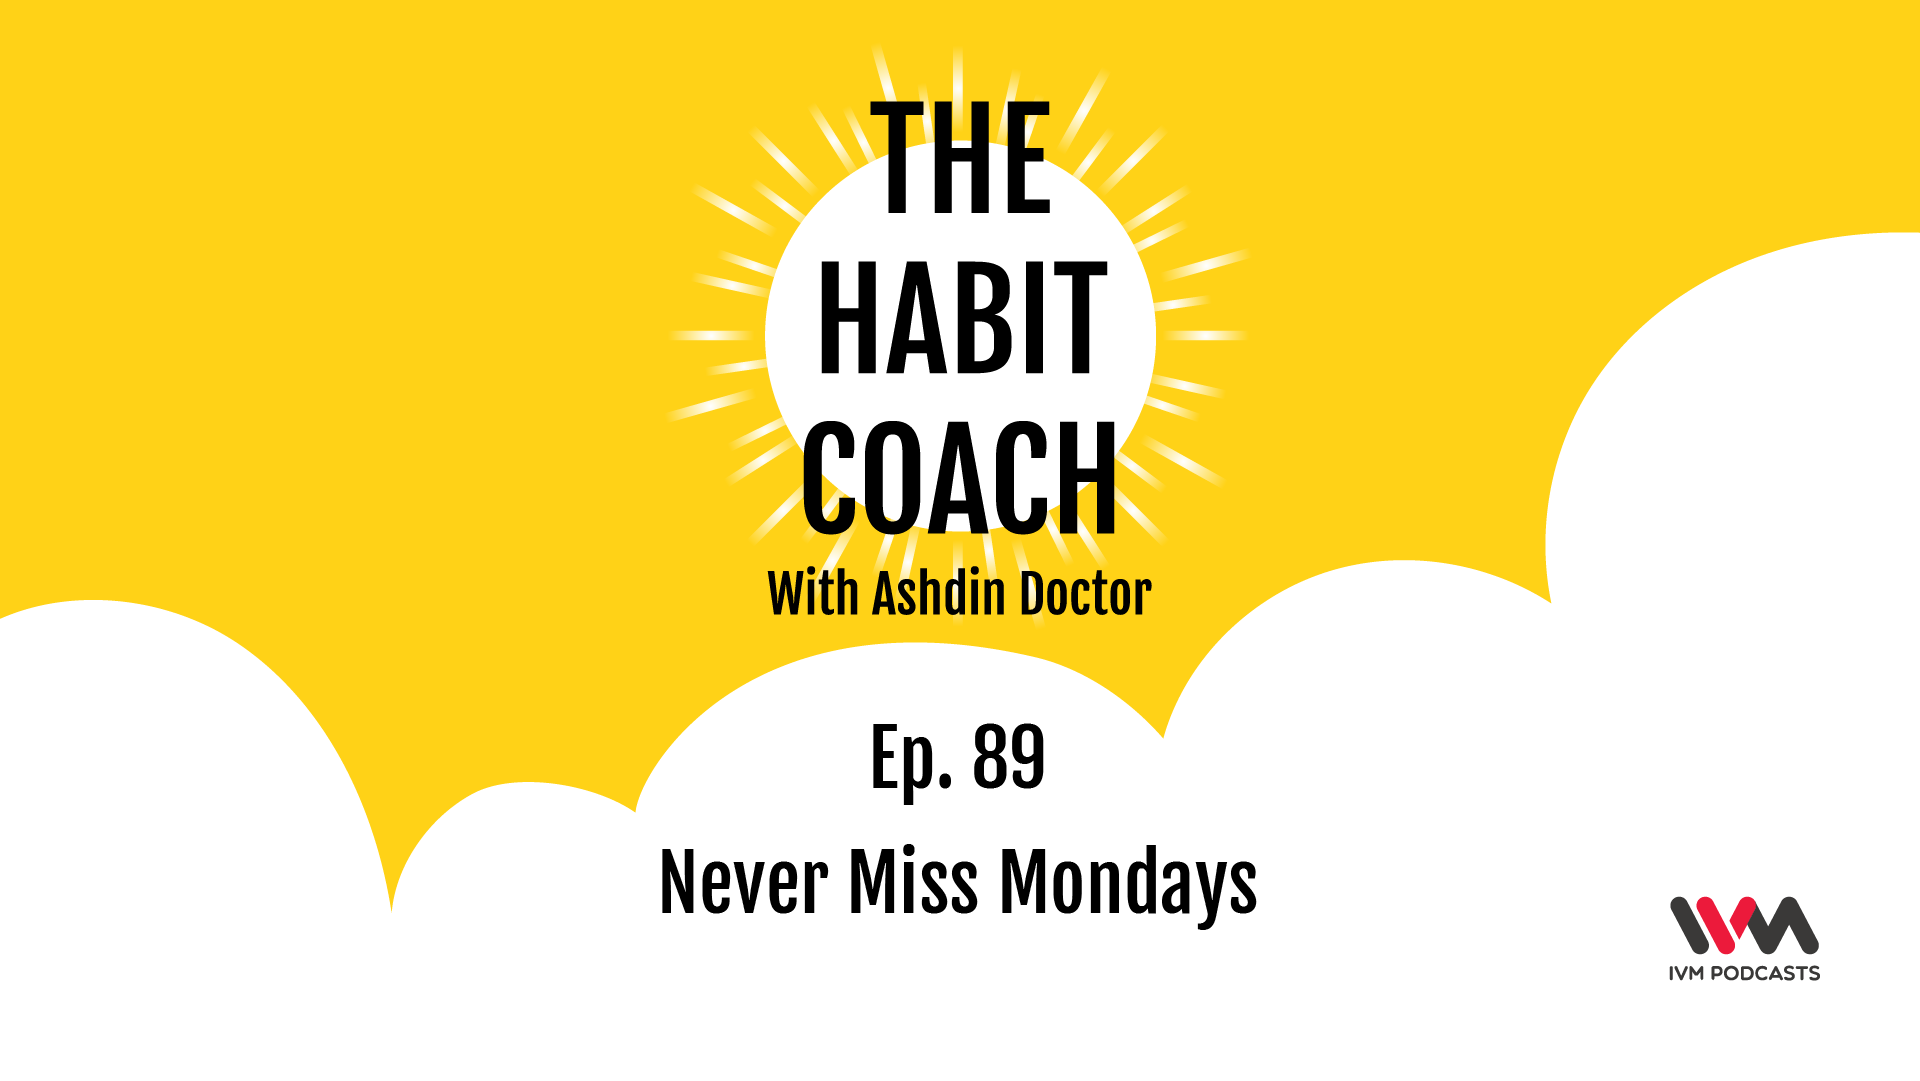 TheHabitCoachEpisode89.png